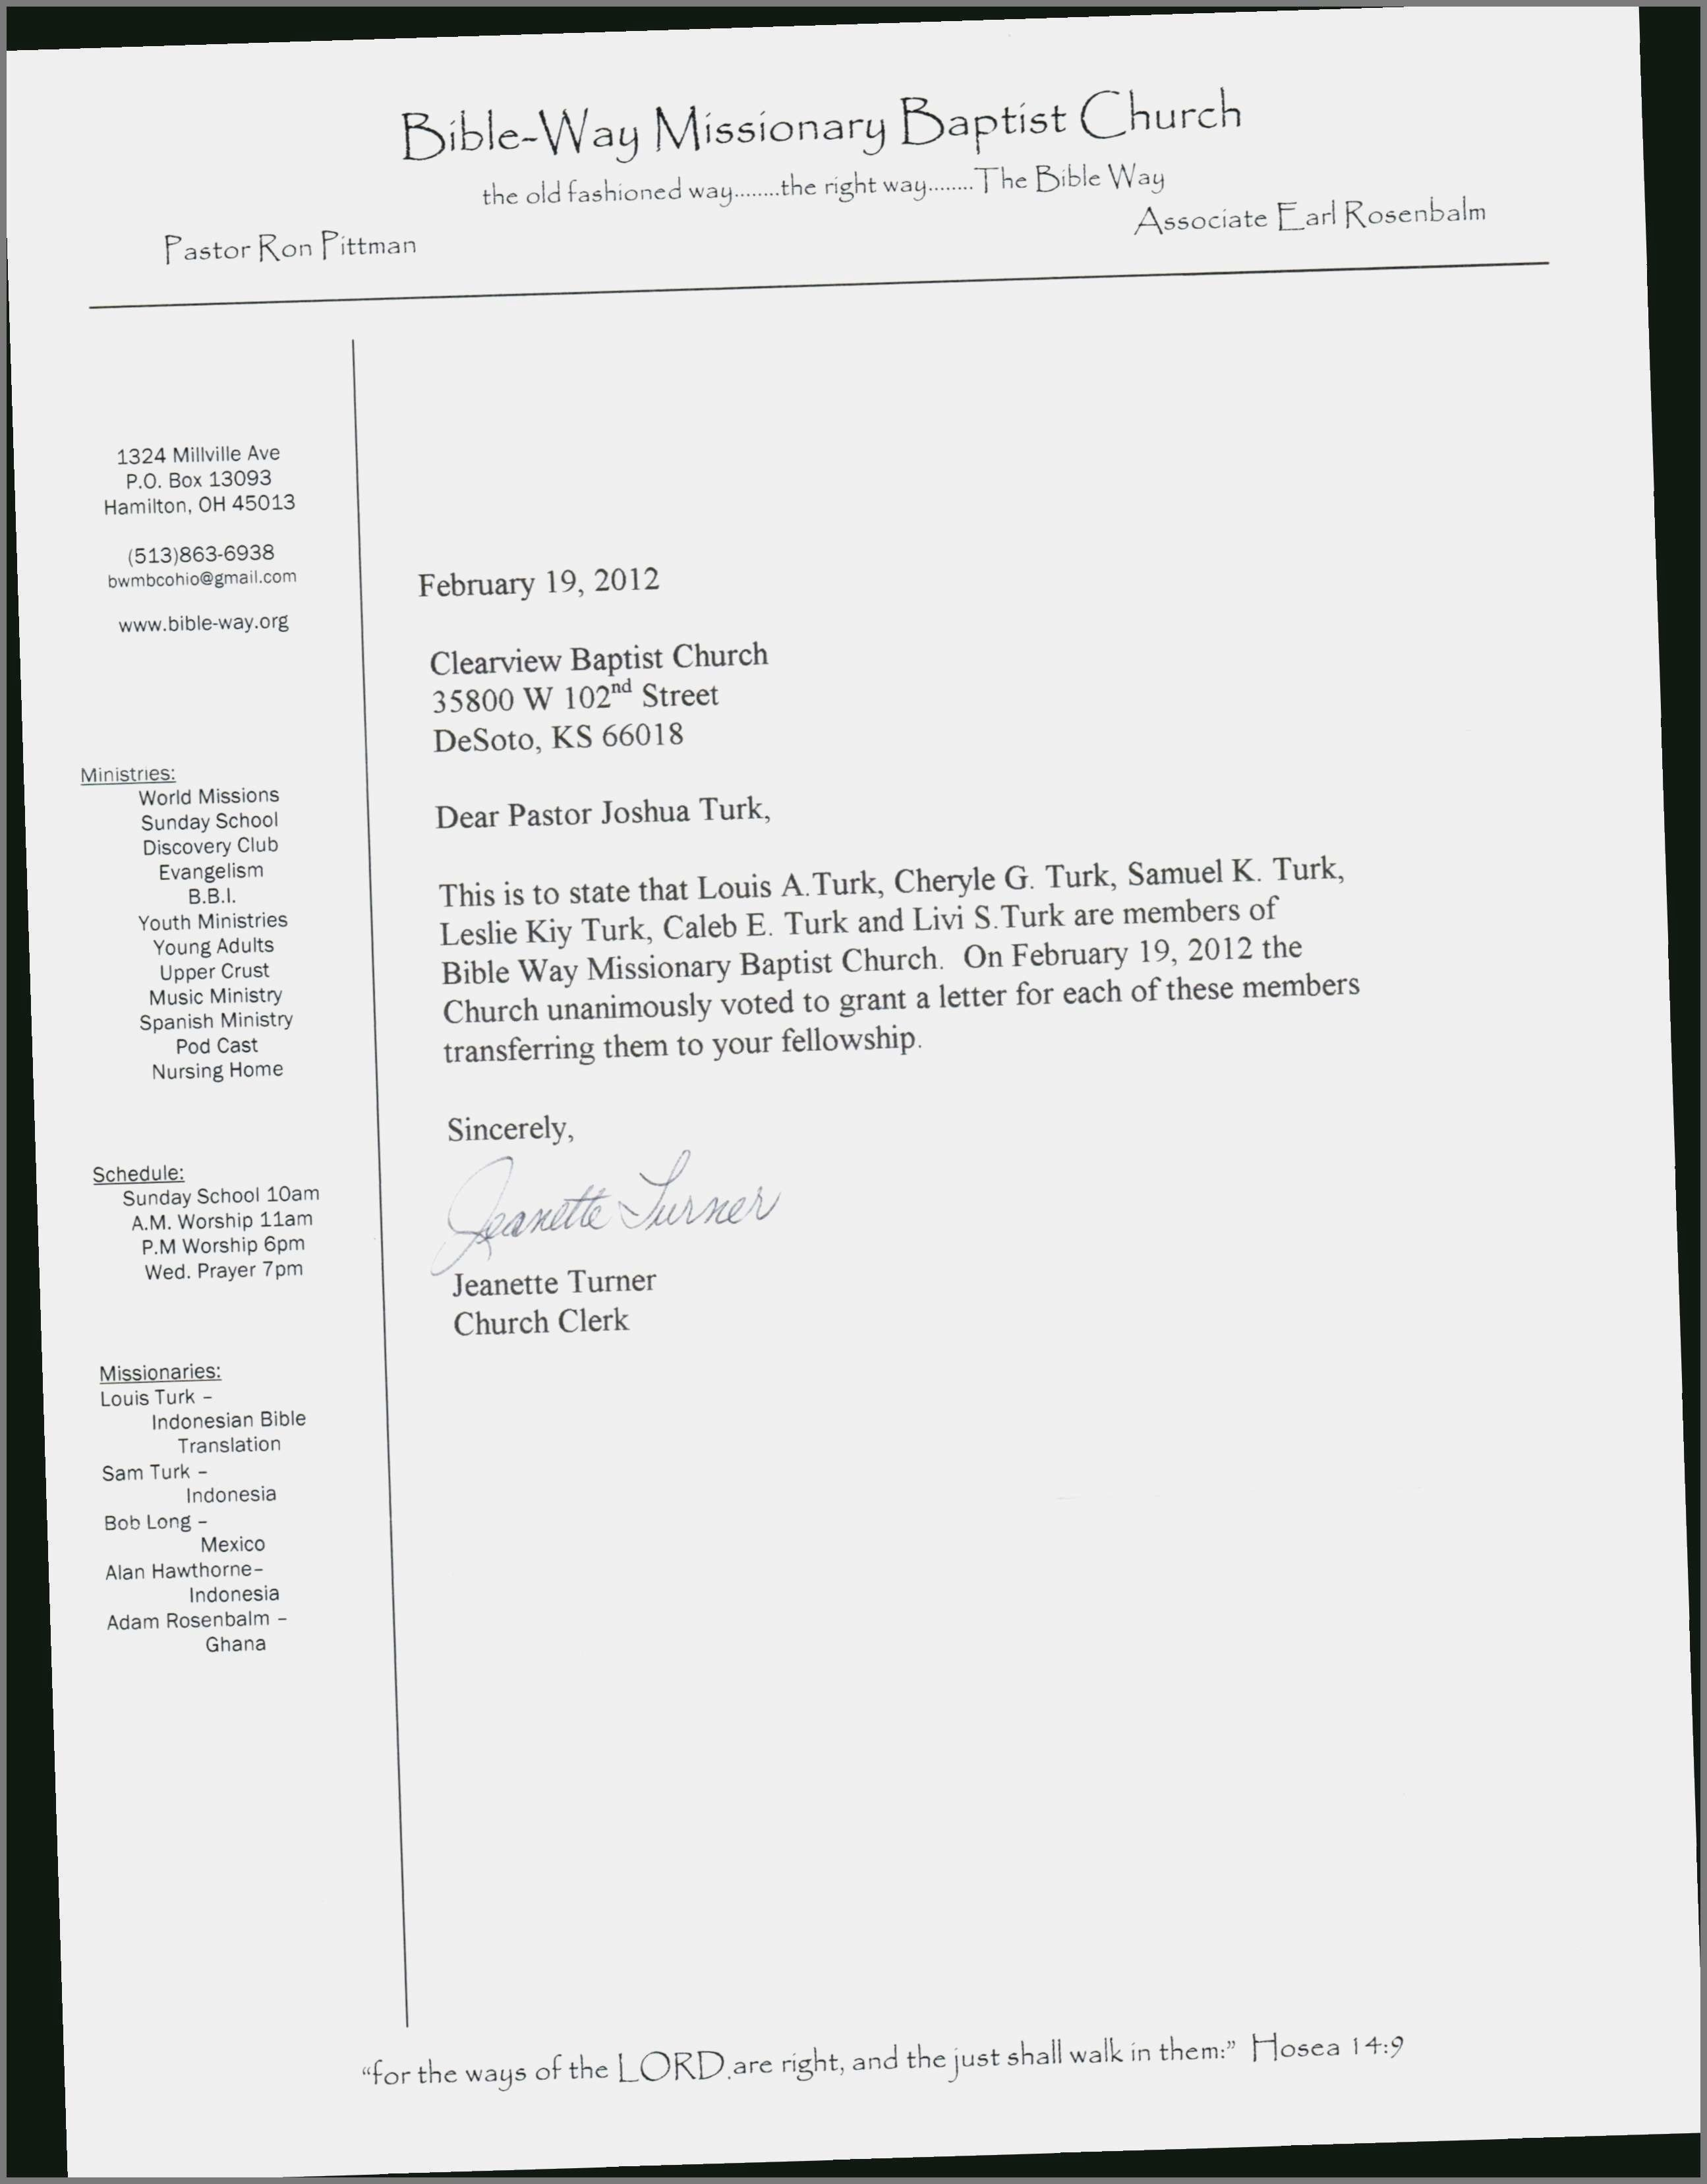 Church Membership Transfer Letter 14 Aesthetic Churches In Desoto Tx